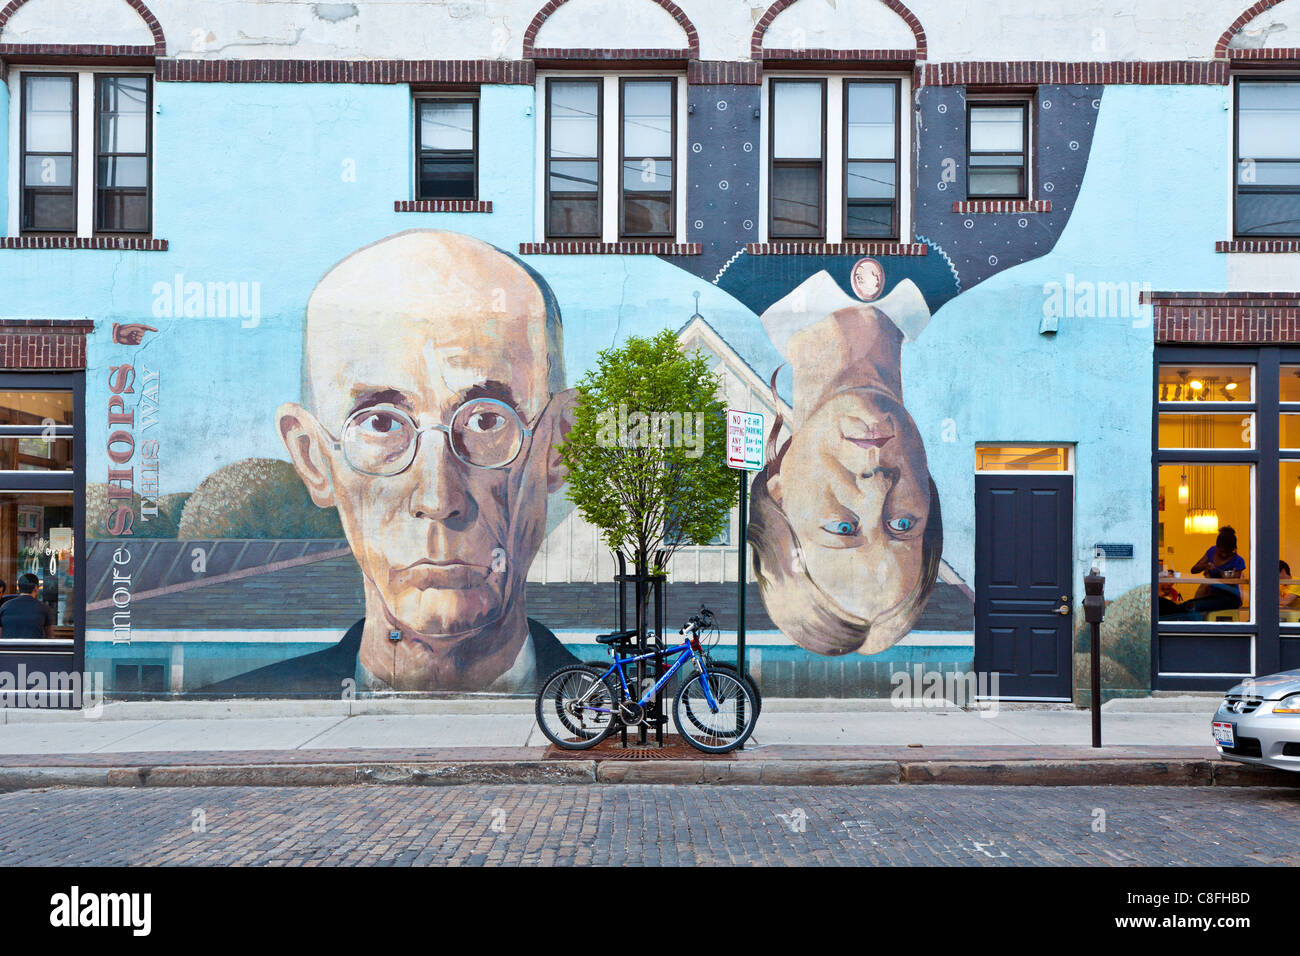 Side of building in Columbus, Ohio painted by Steve Galgas and Mike Altman is similar to American Gothic by Grant - Stock Image